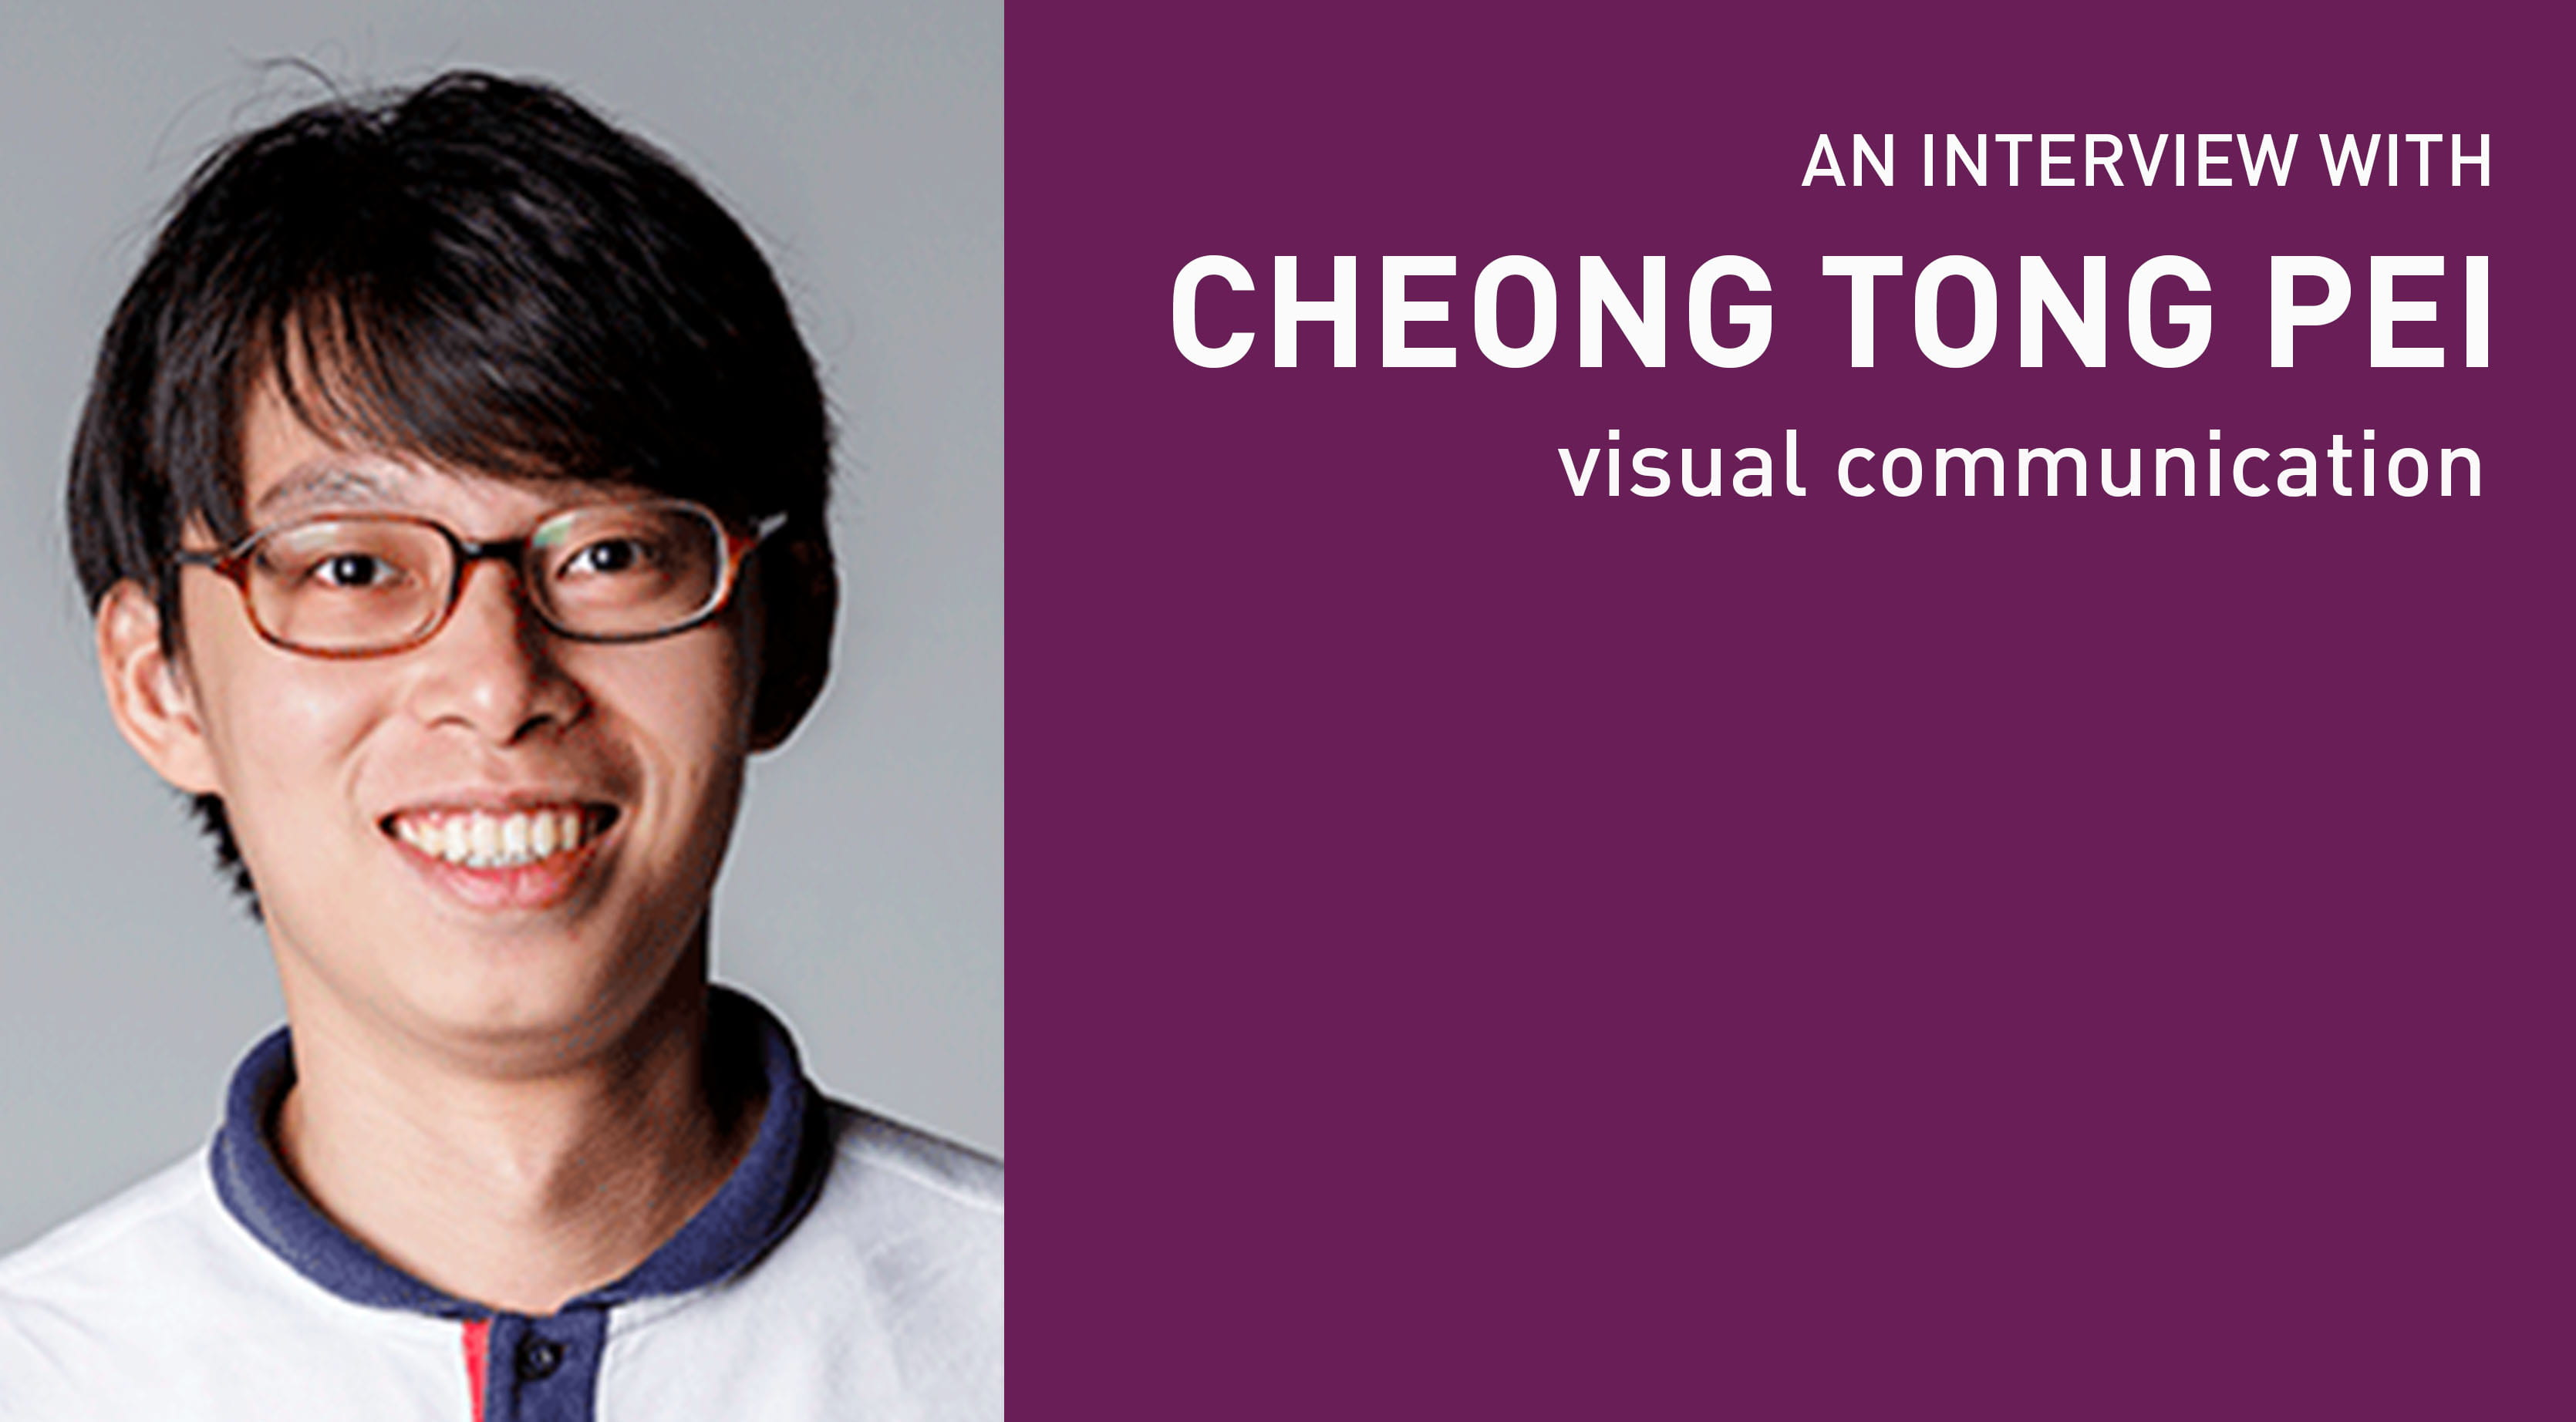 Interview with: Cheong Tong Pei